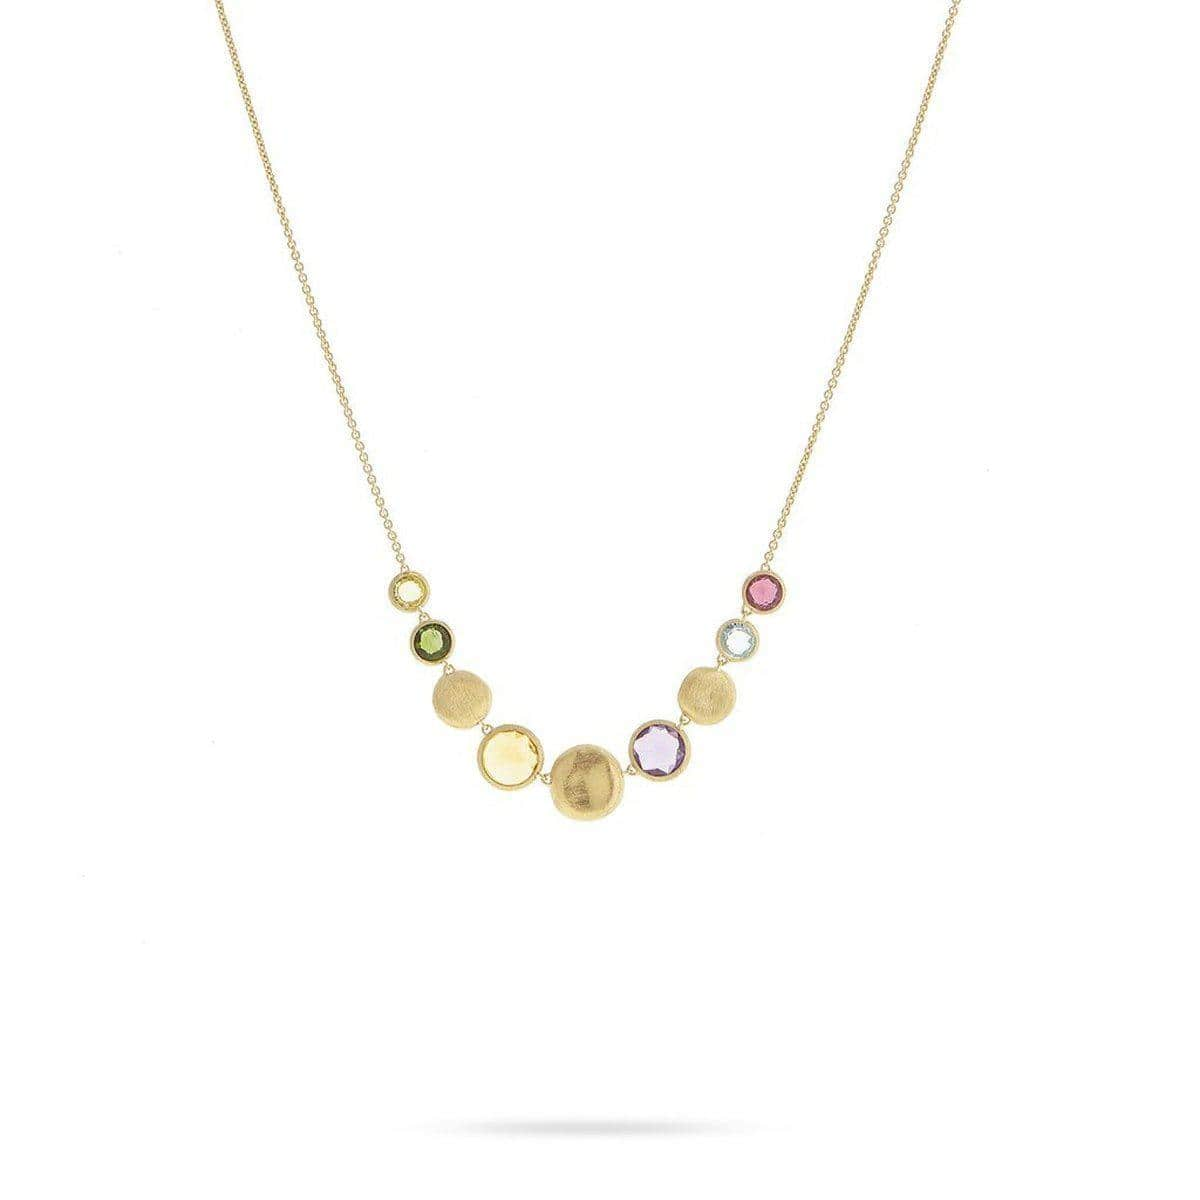 18K Jaipur Necklace - CB2241 MIX01 Y-Marco Bicego-Renee Taylor Gallery